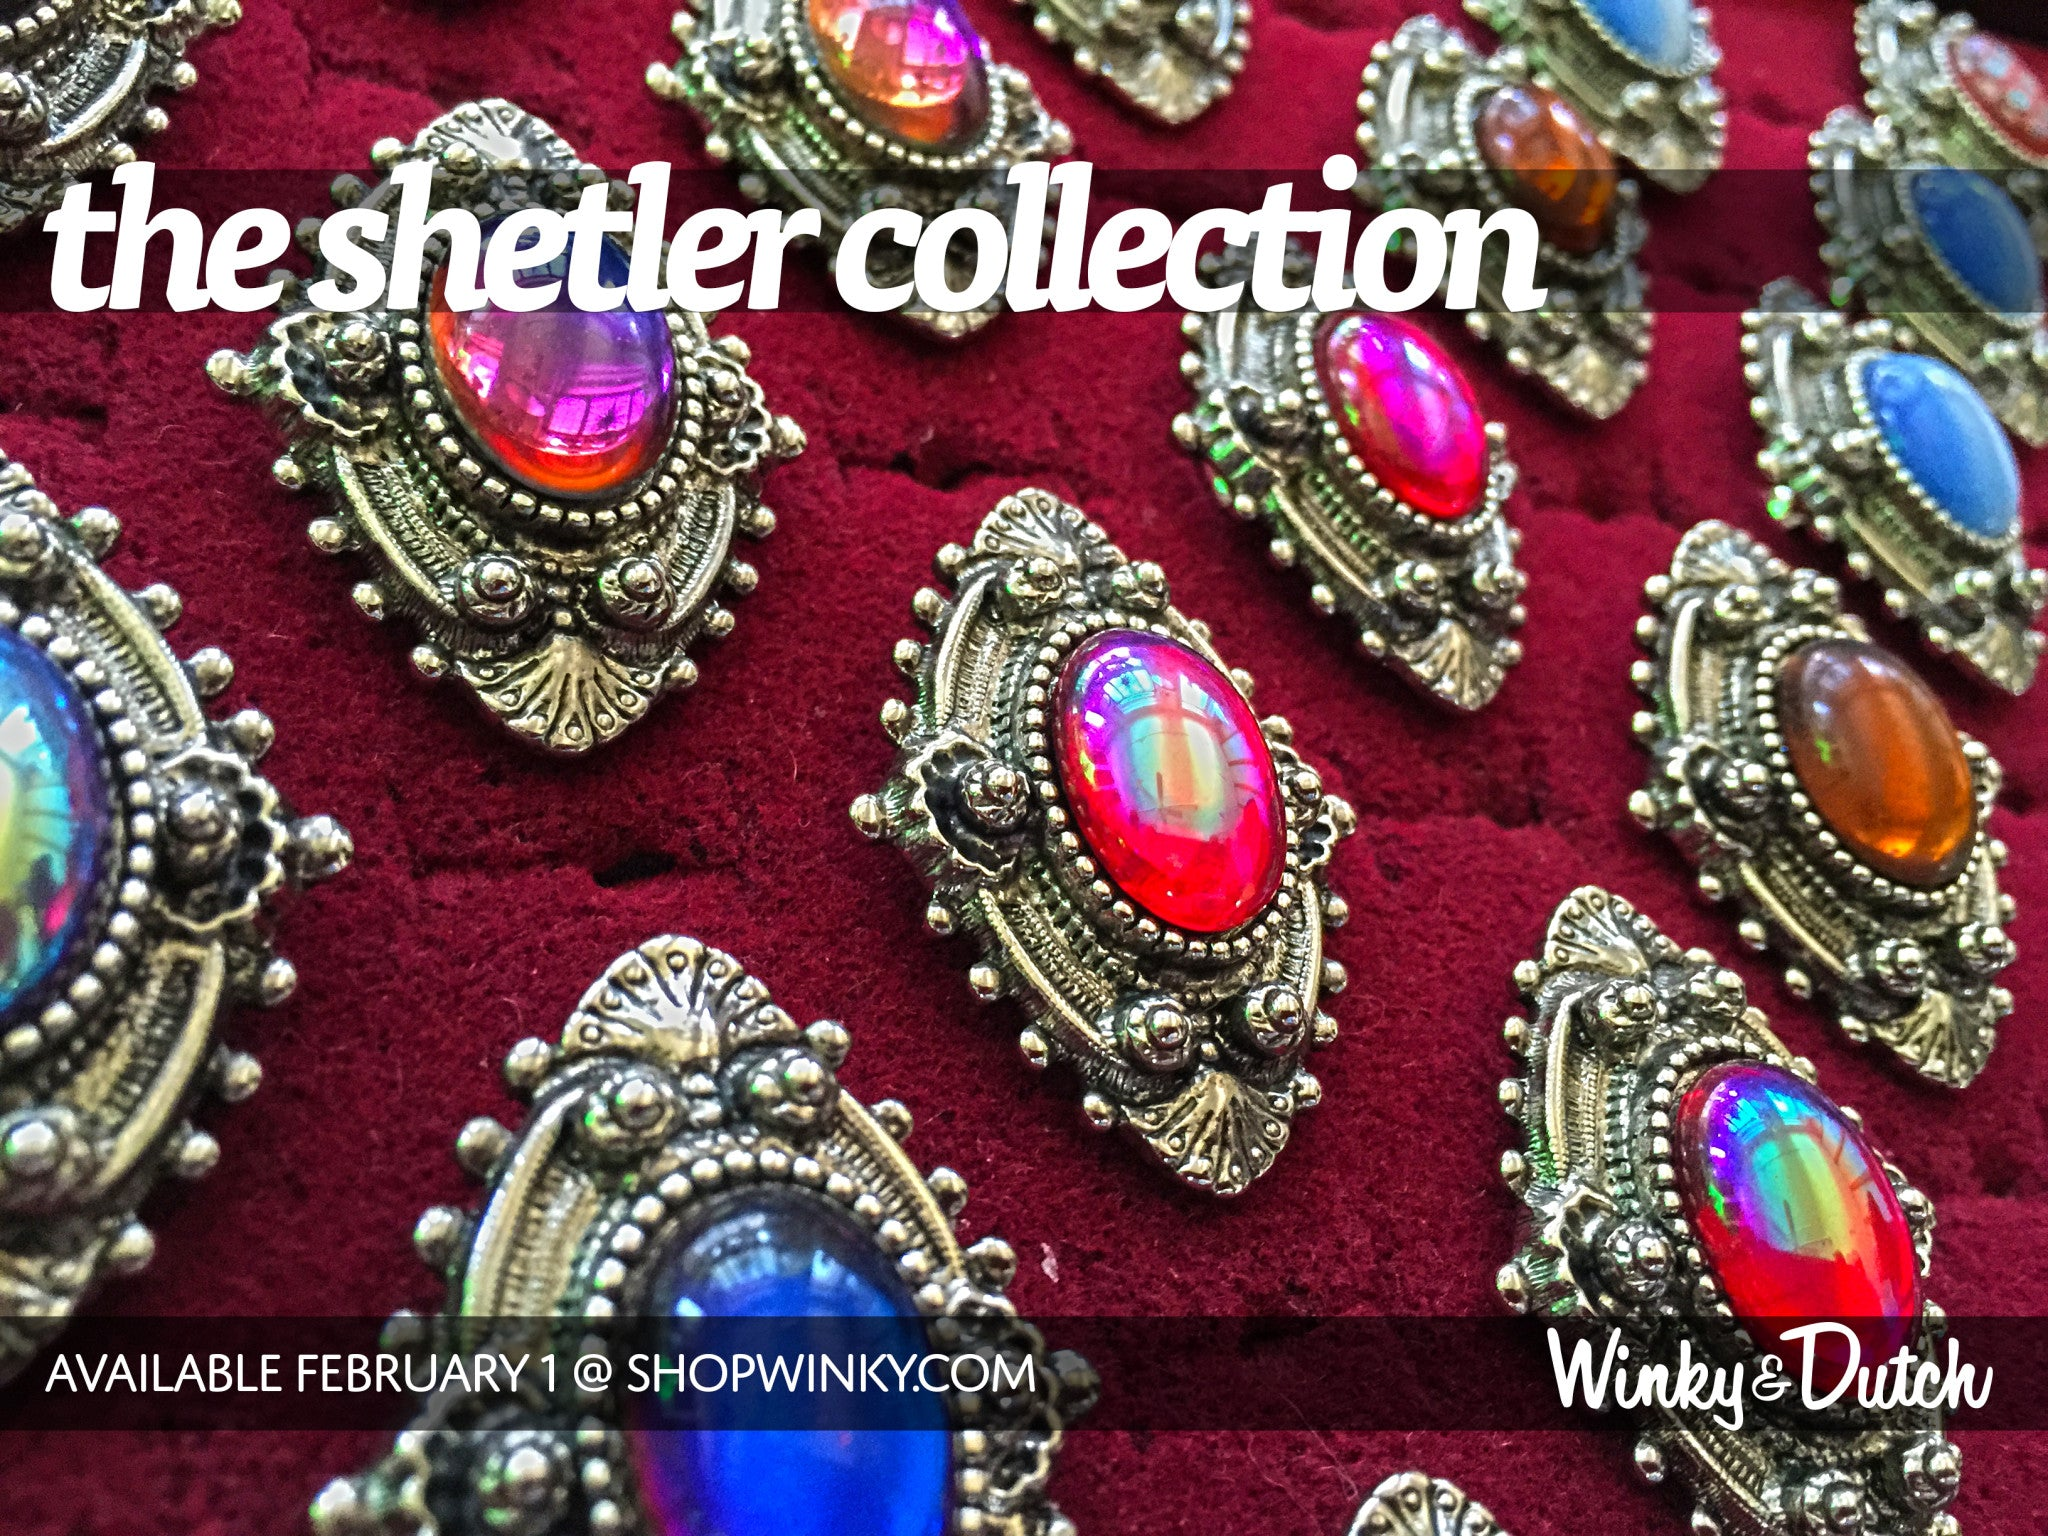 SHETLERCOLLECTION_01282015